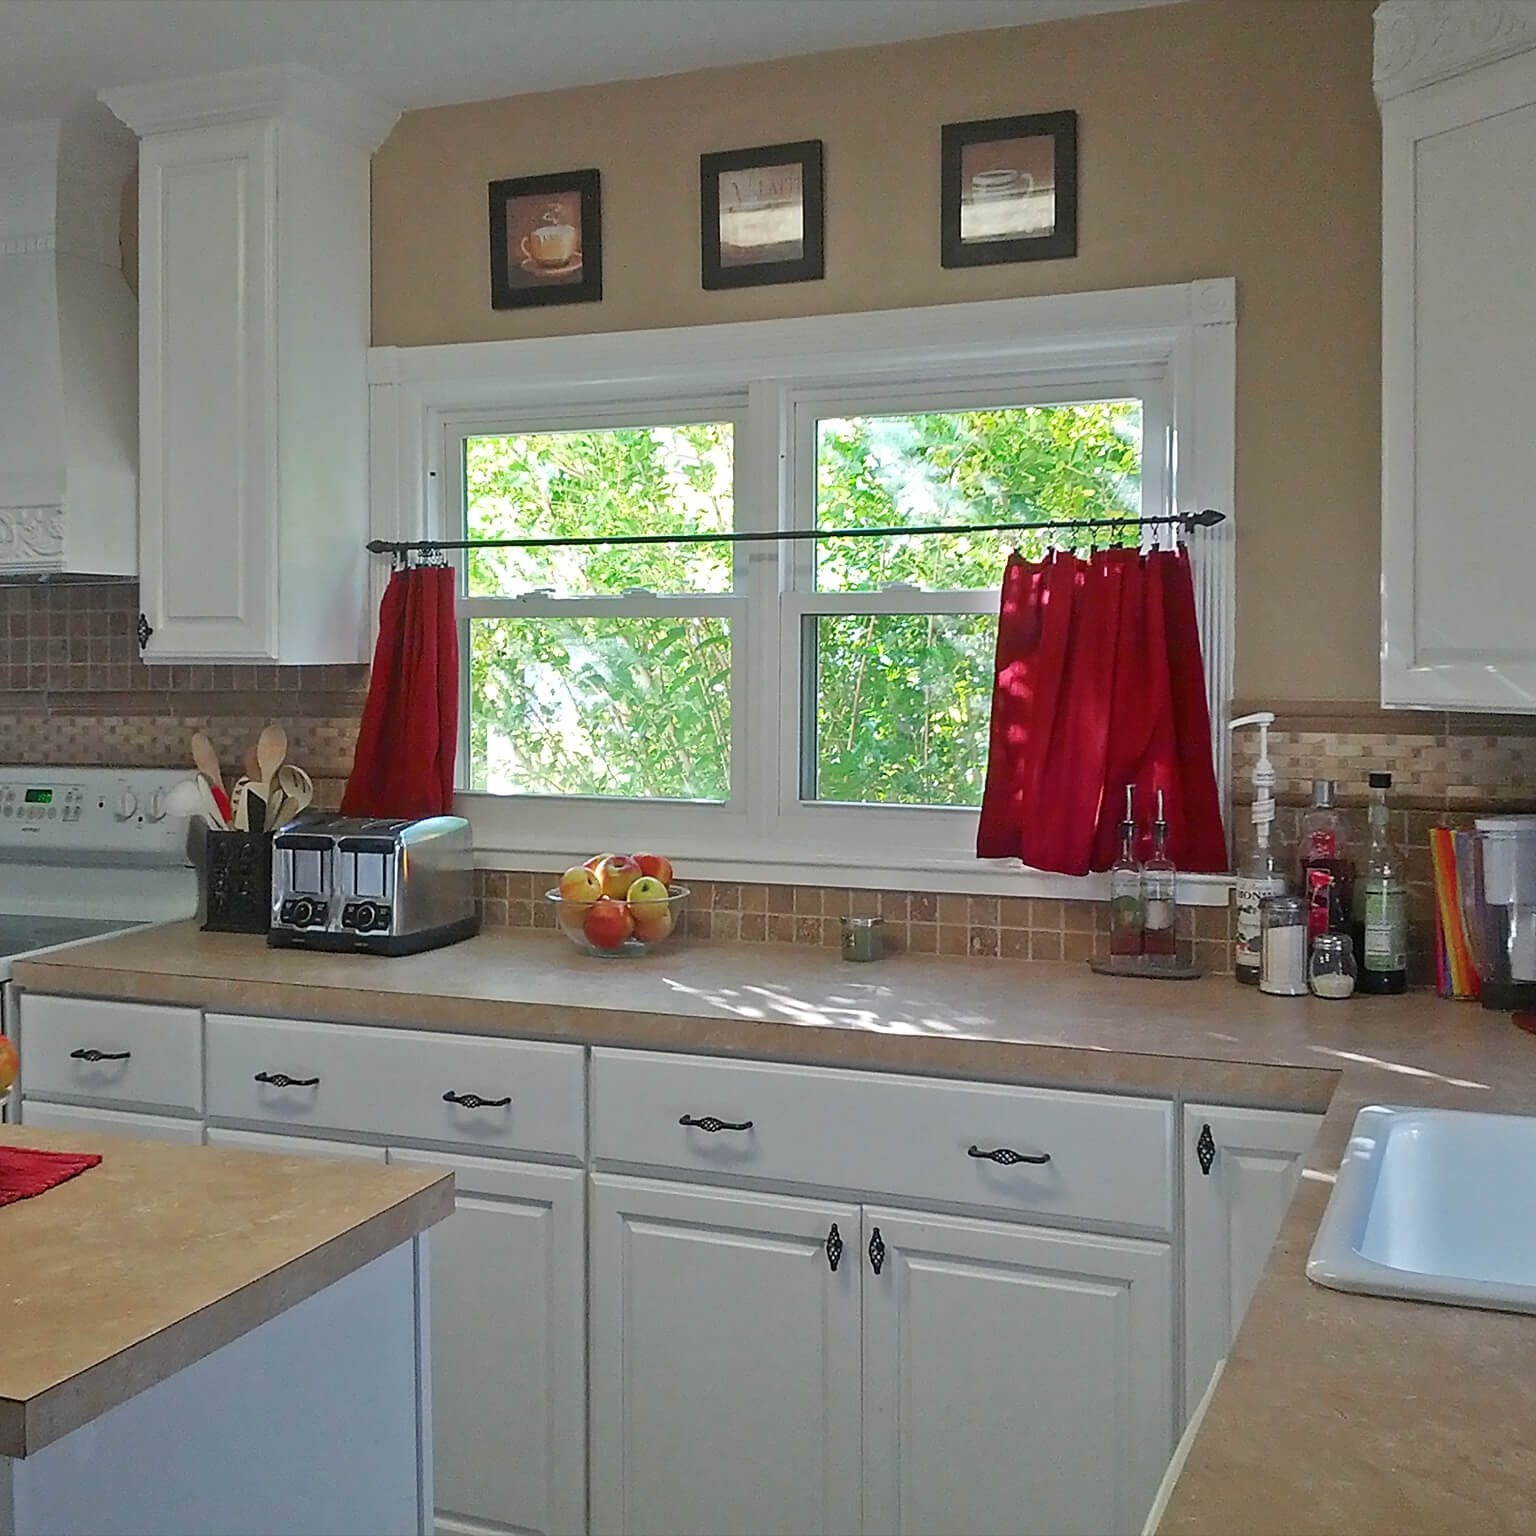 Kinetic Kitchen and Bath Gallery Photo - Kitchen remodel design 11